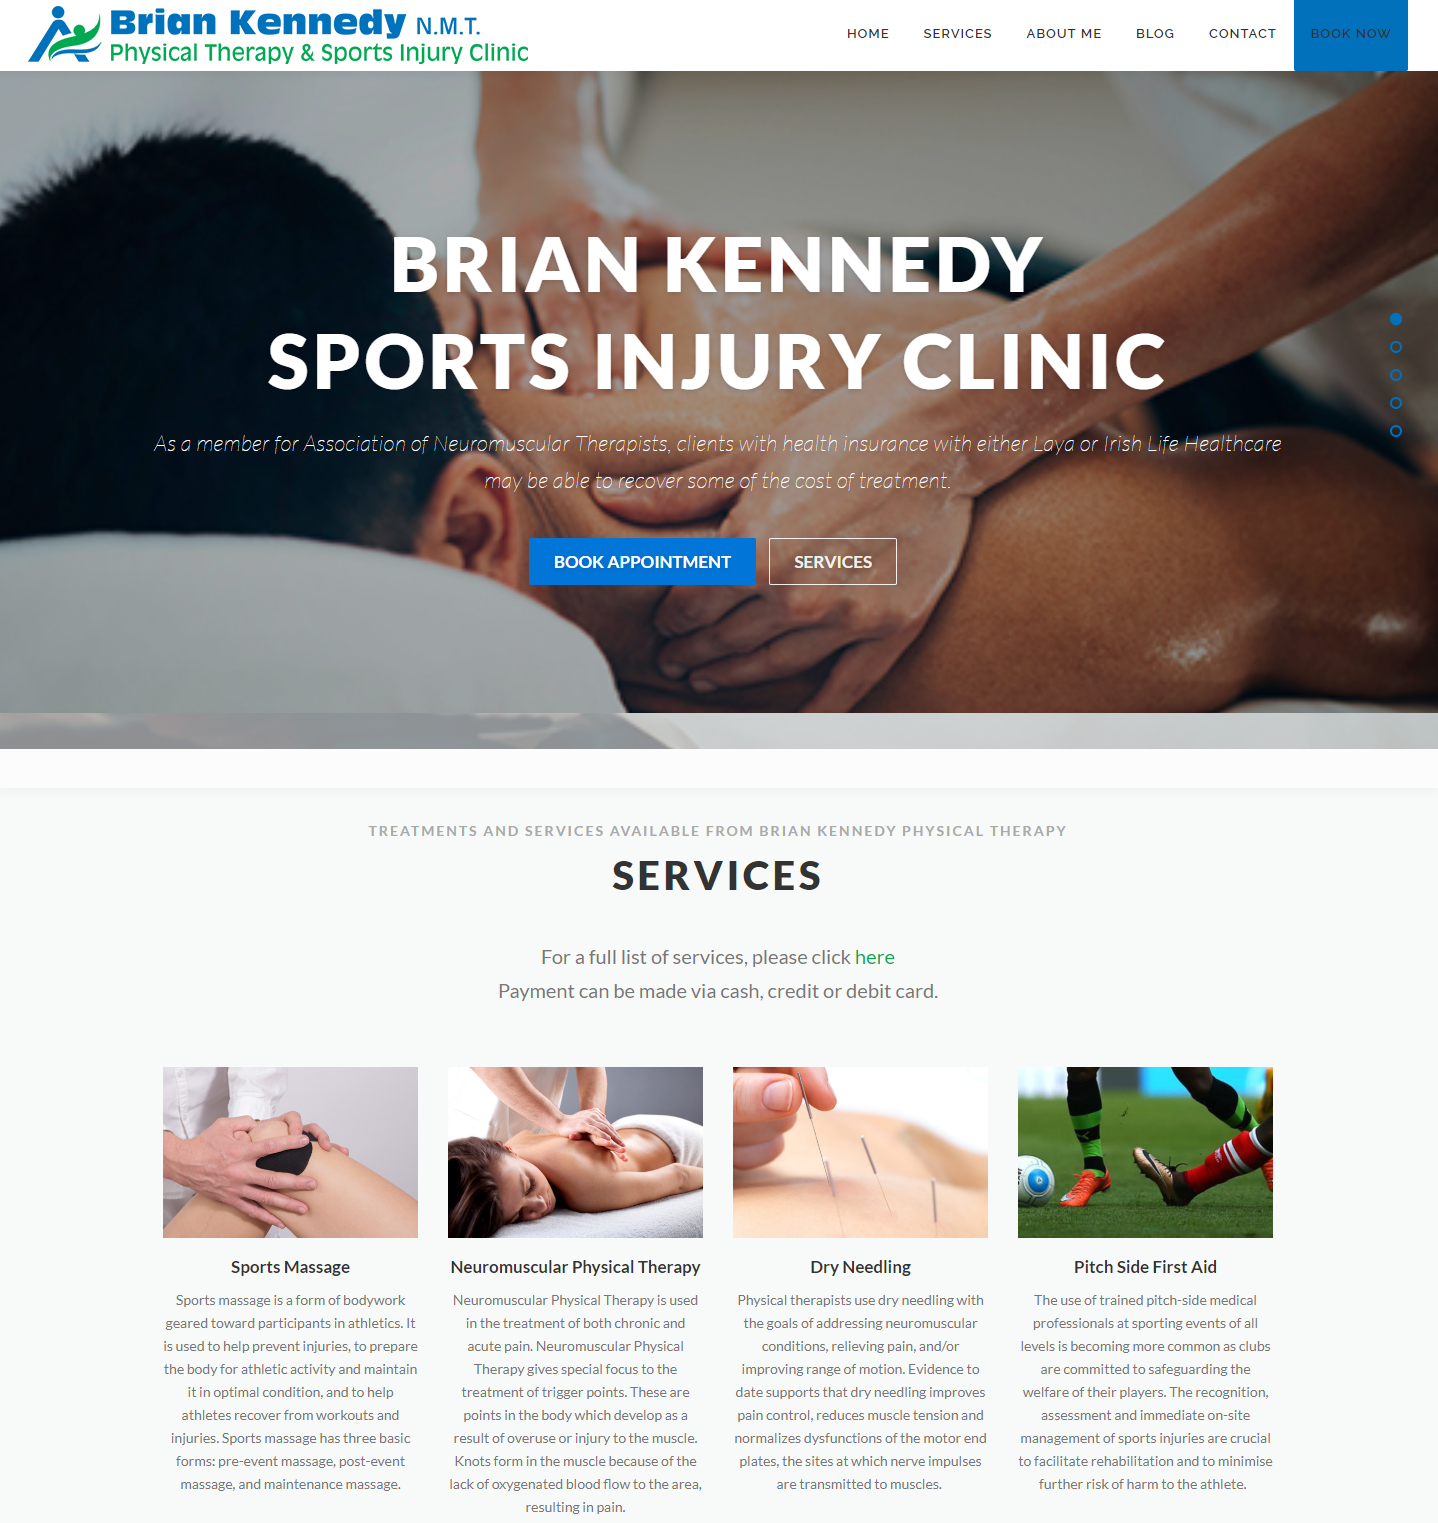 brian kennedy physical therapy